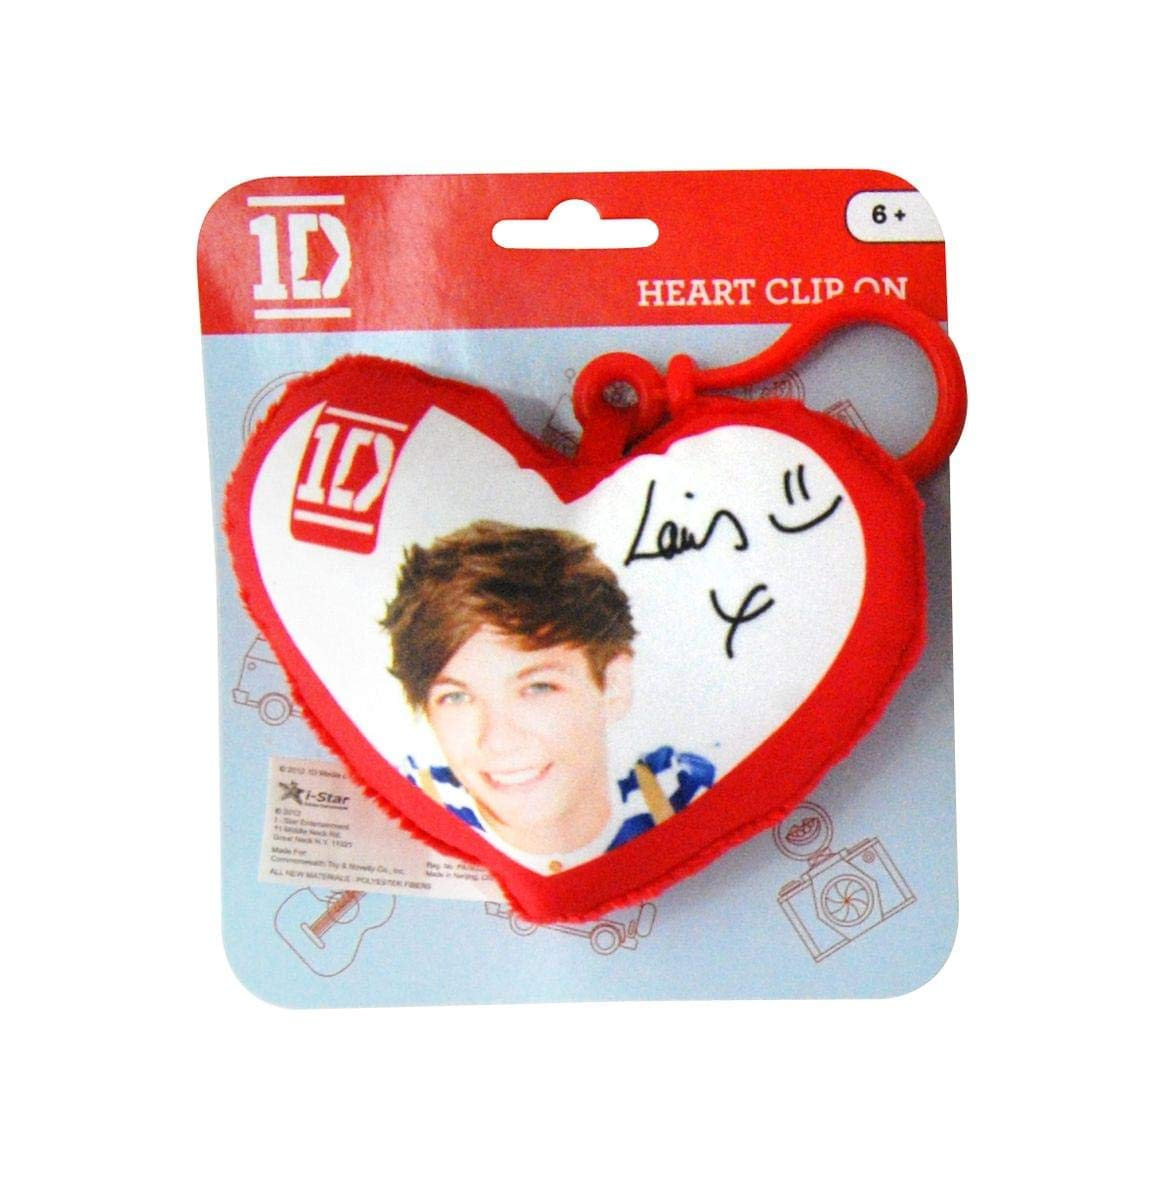 1D One Direction Plush Heart Back Pack Clip Louis by Musical Artist